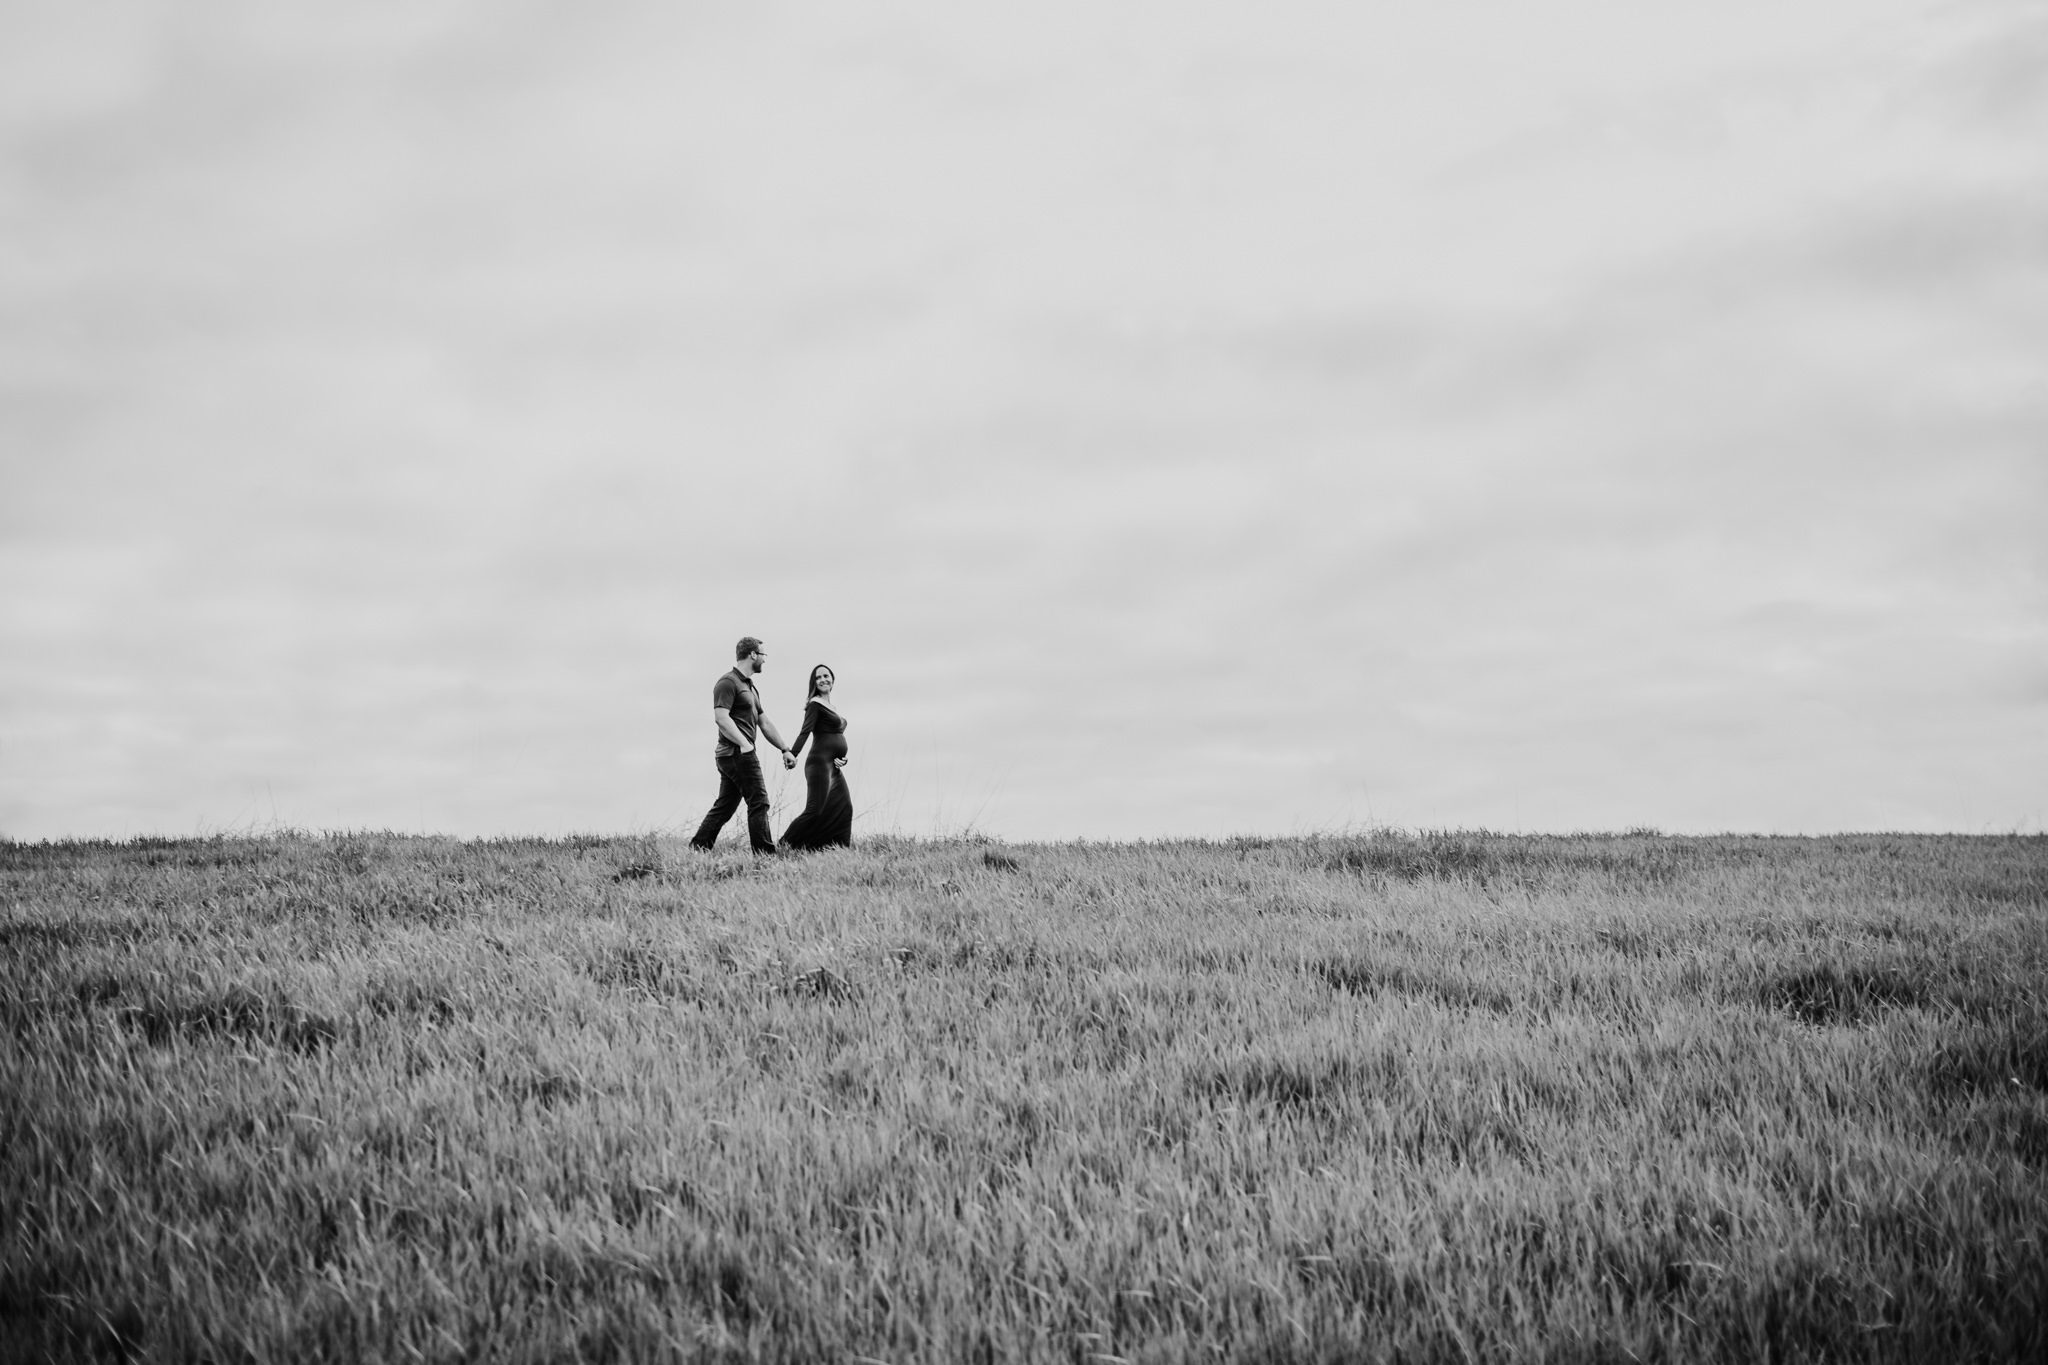 husband and wife walking on crest of hill while holding hands and pregnant